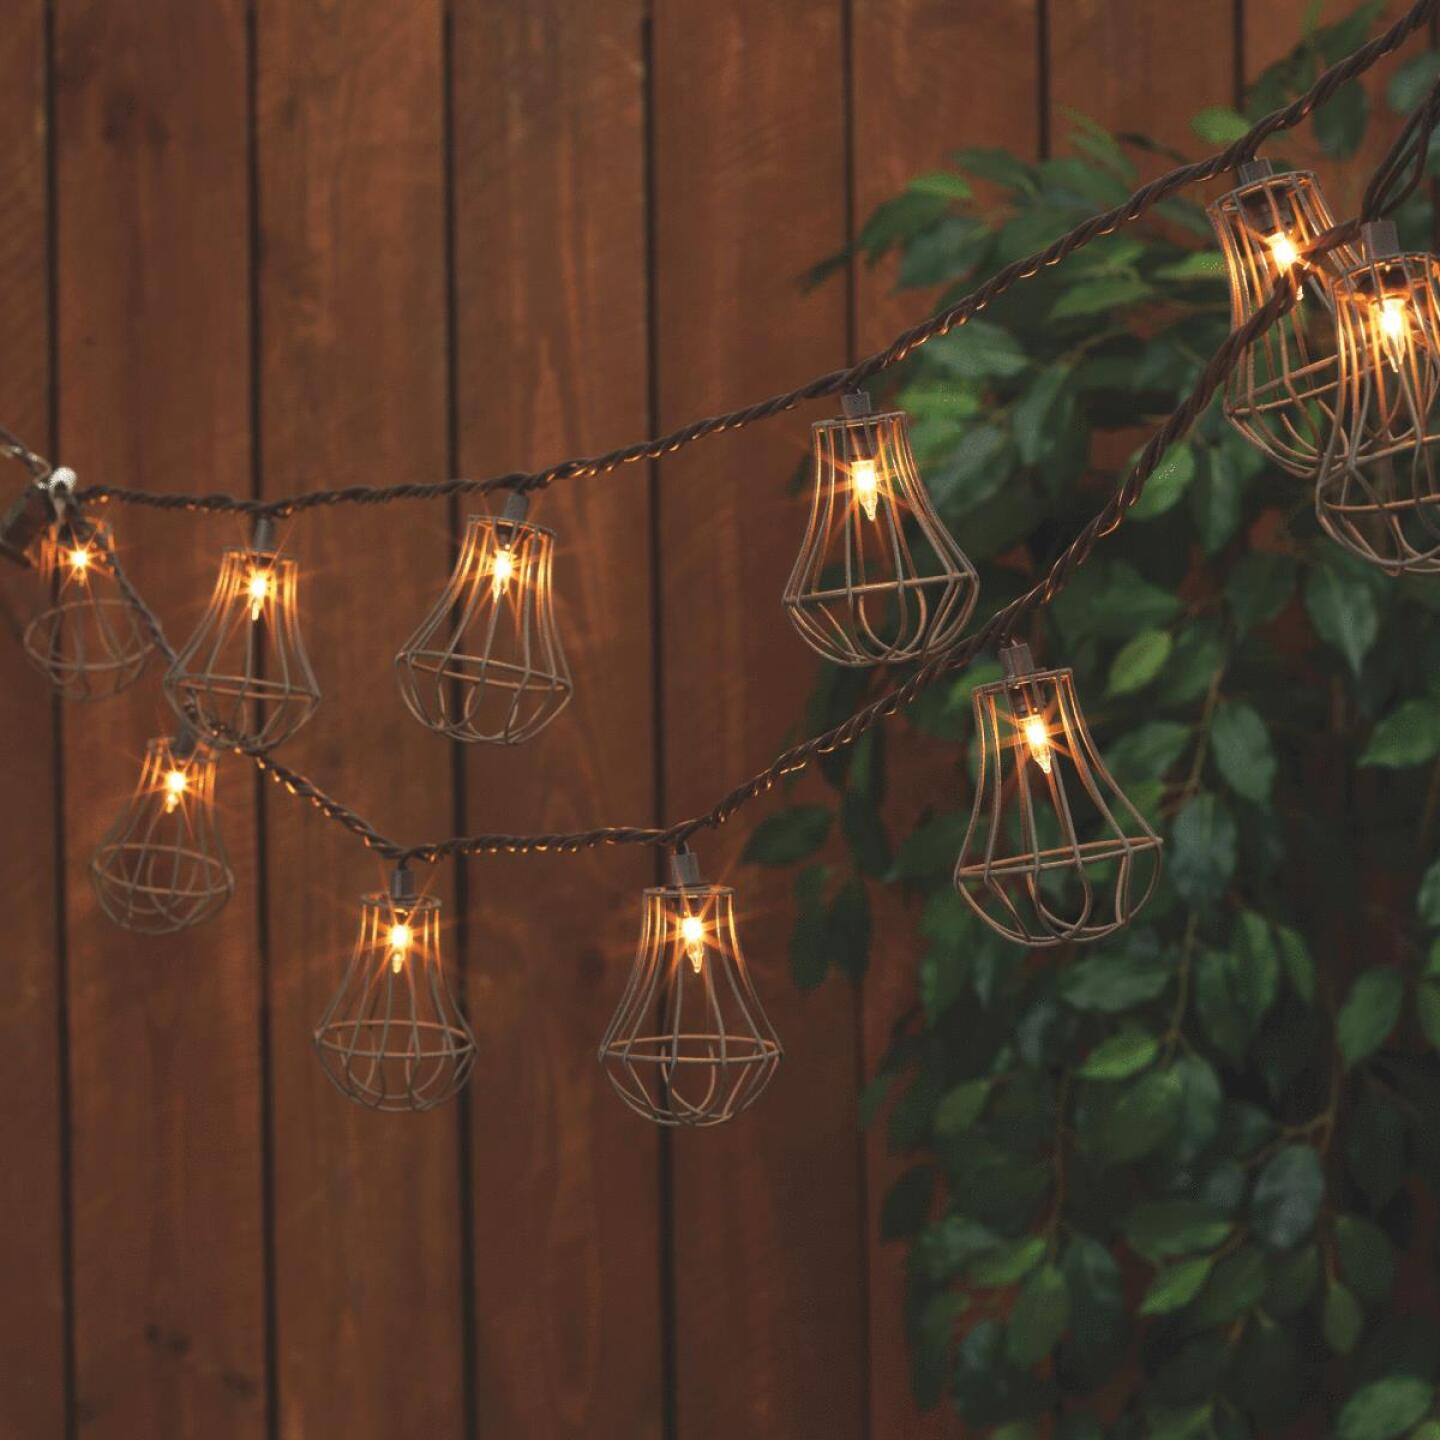 Everlasting Glow 8.5 Ft. 10-Light White Rustic Cage String Lights Image 1